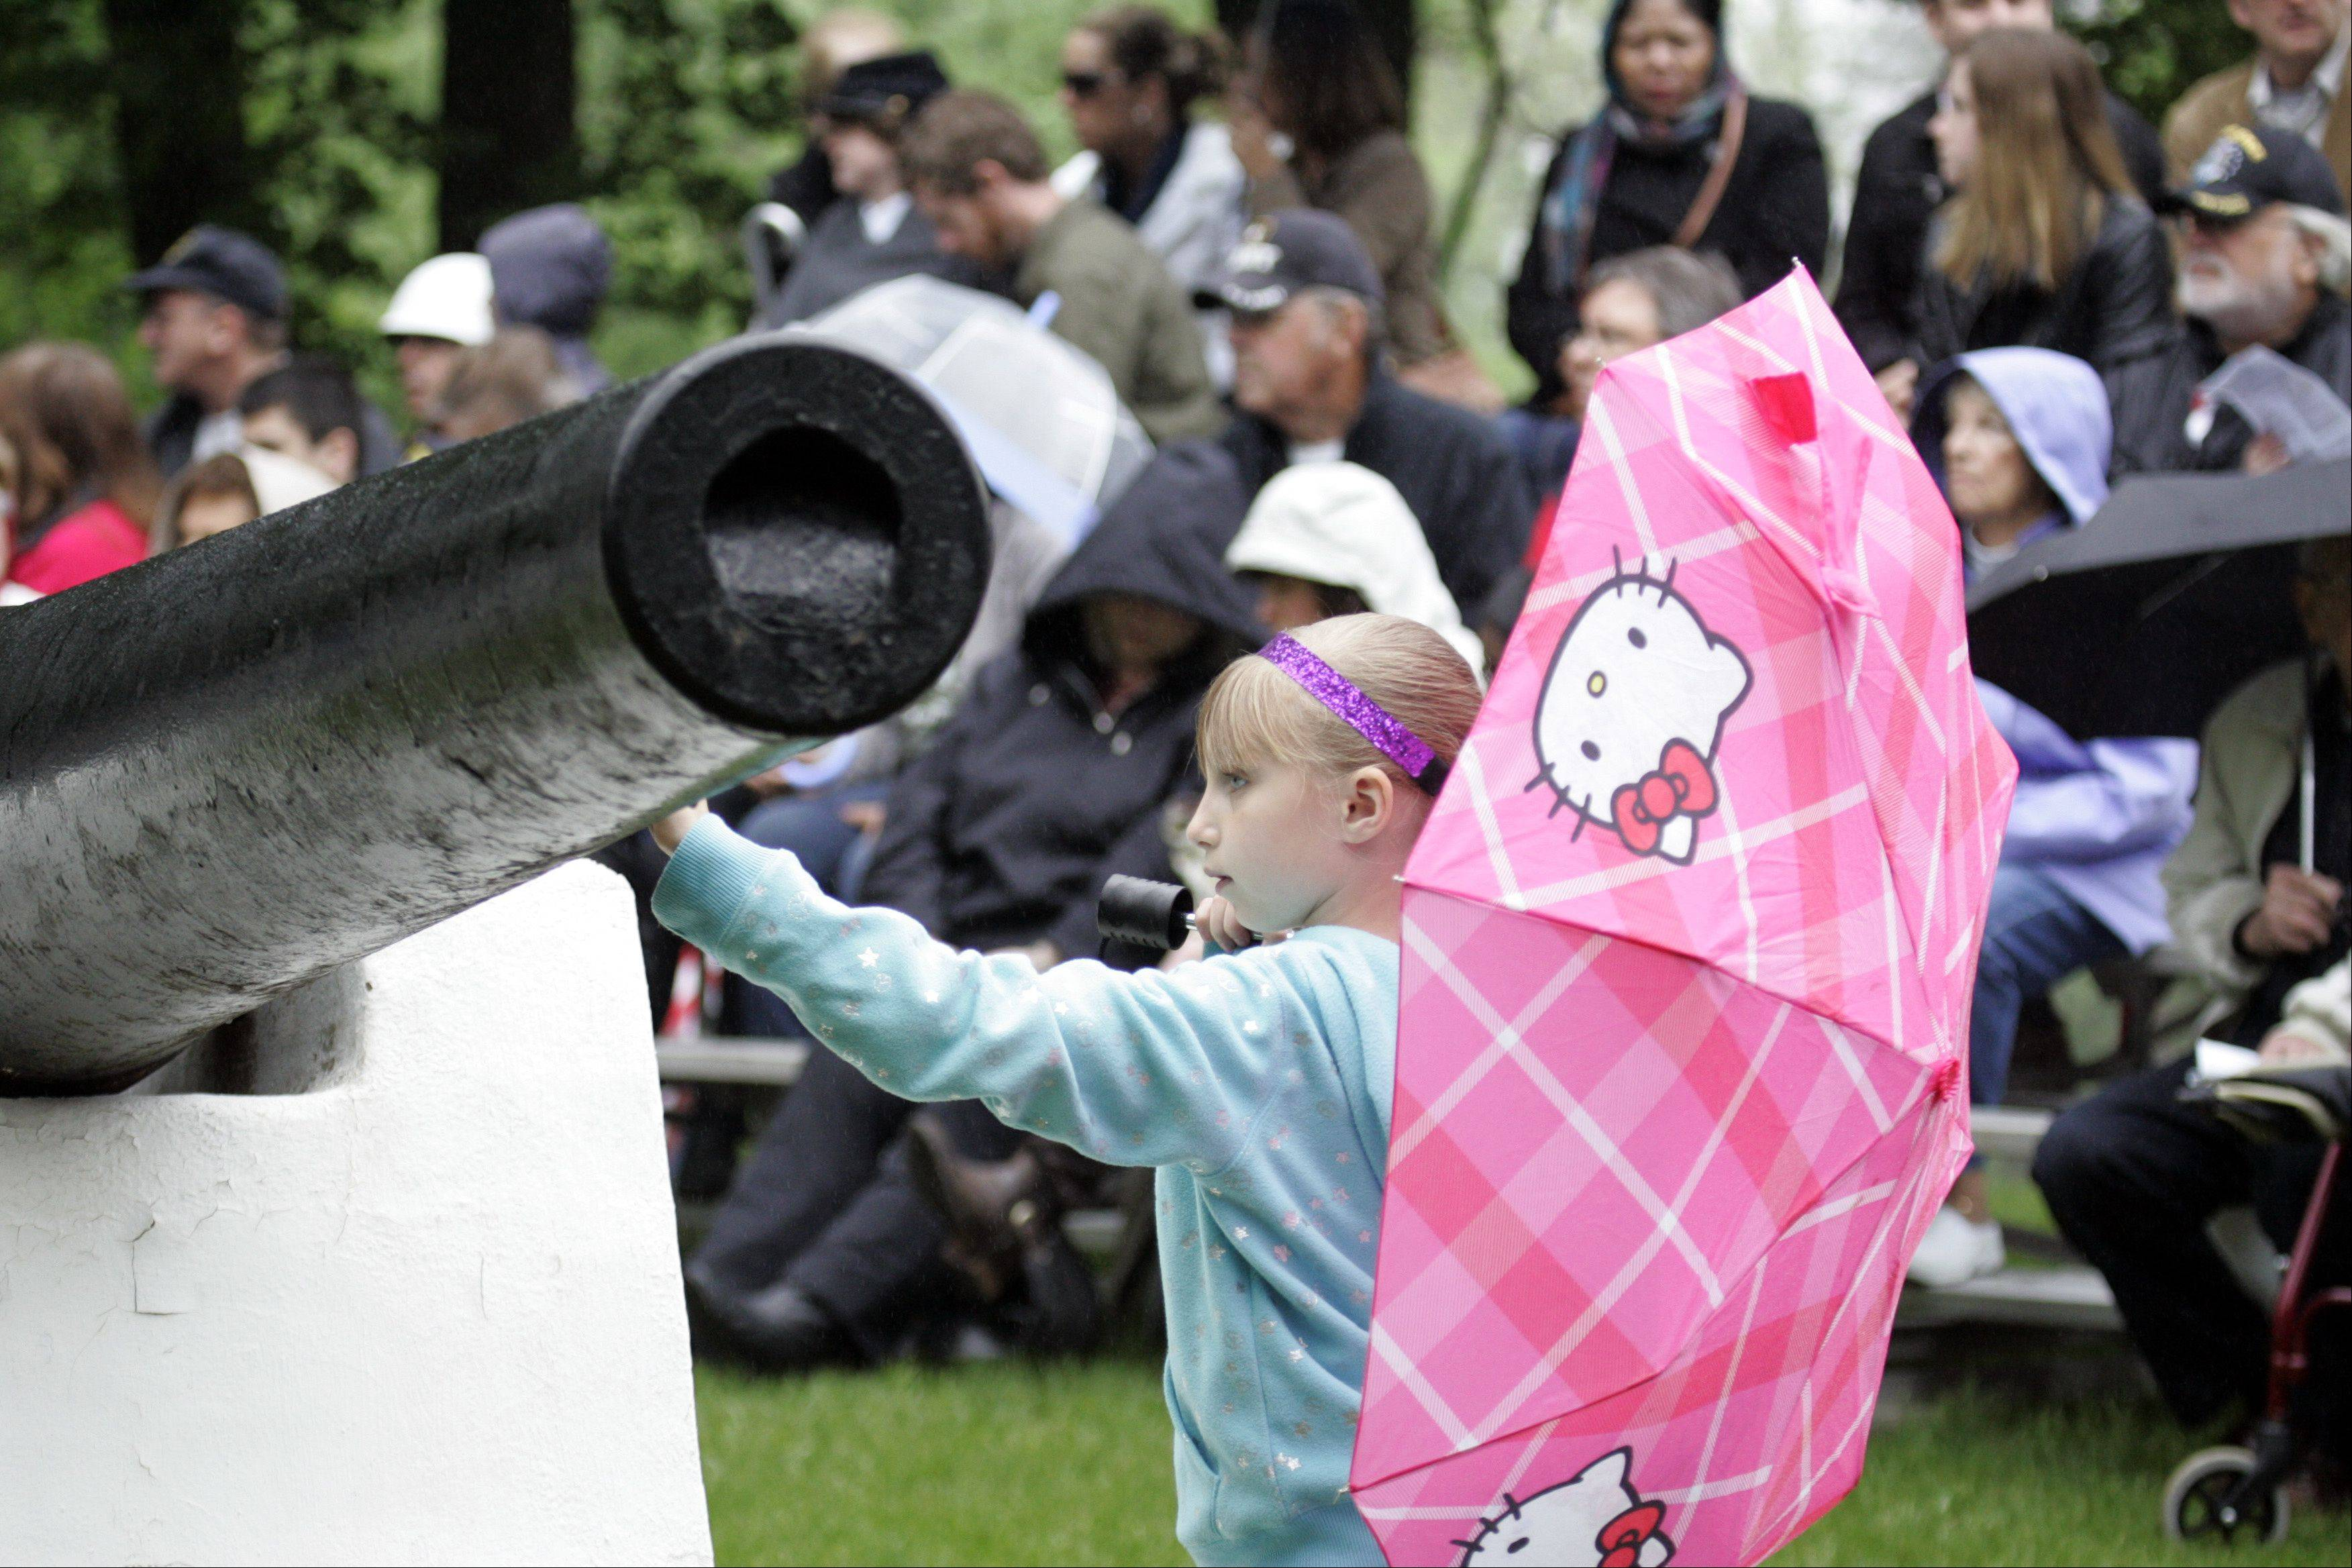 Seven-year-old Lynda Rotundo of Lake in the Hills gets a closer look at a canon before the Memorial Day celebration at Bluff City Cemetery in Elgin Monday.